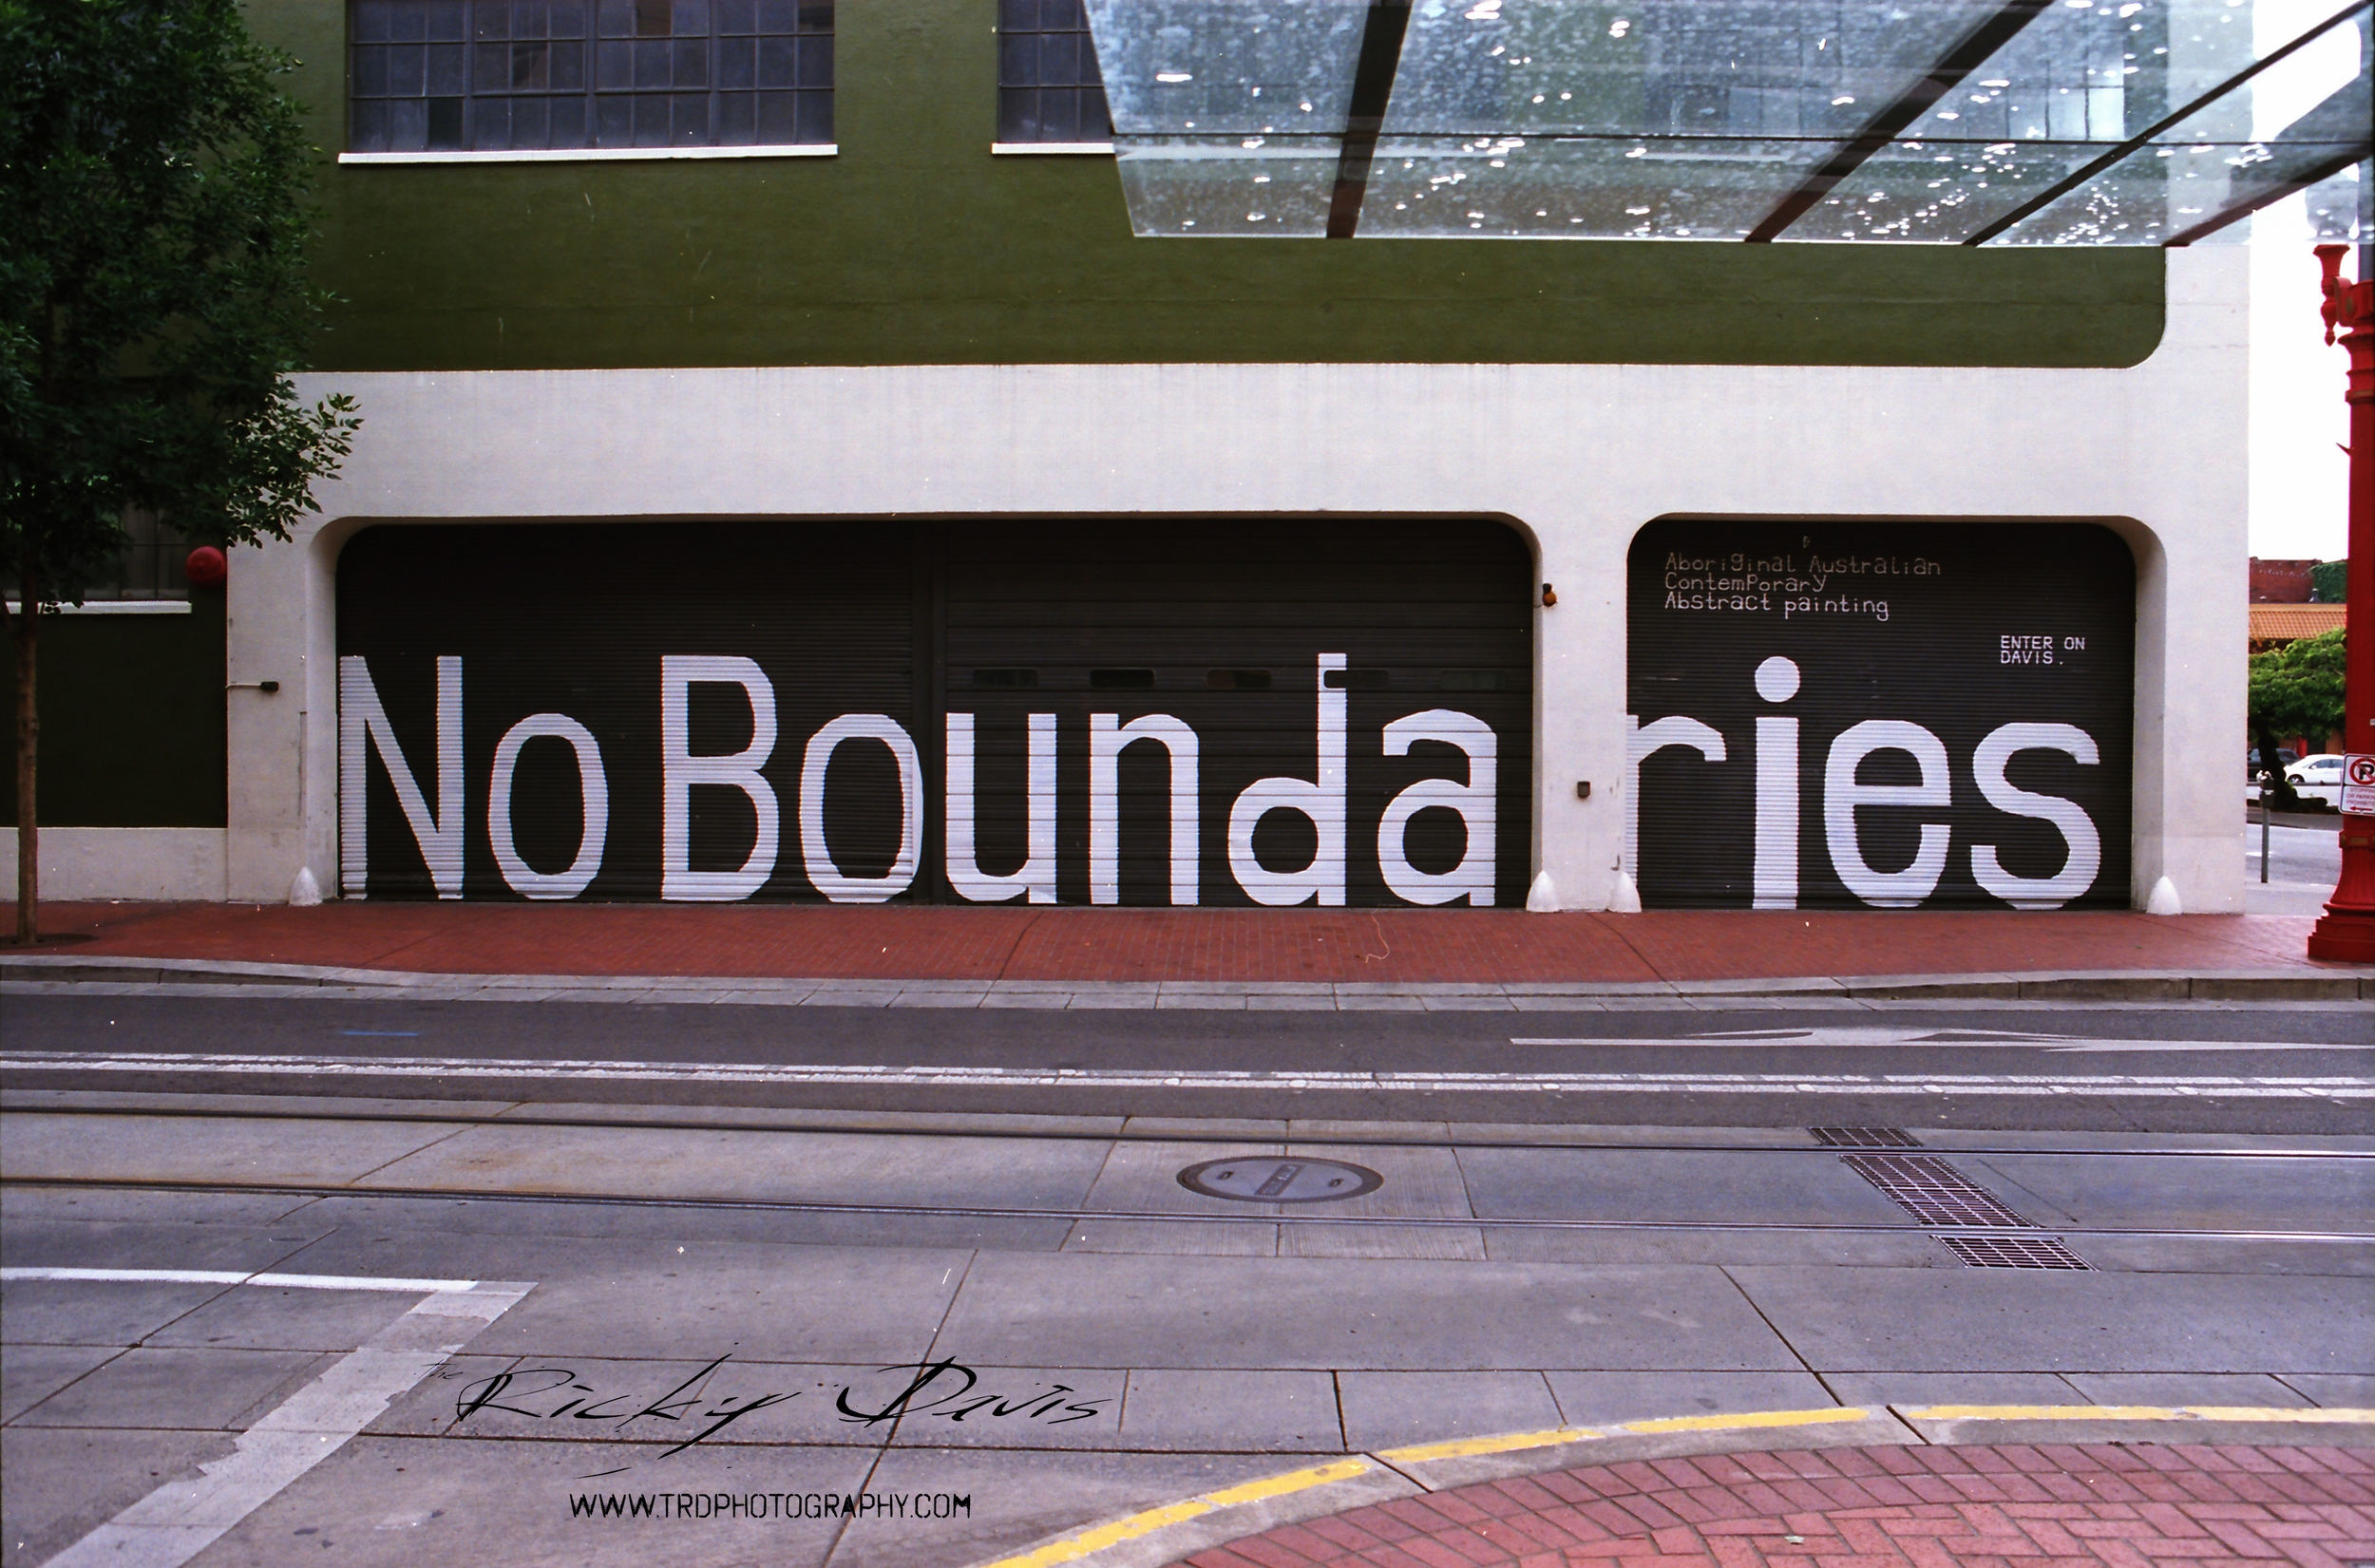 No Boundaries - Portland, OR - Photographer Ricky Davis of TRD Photography - Kodak Ektar 100 Film